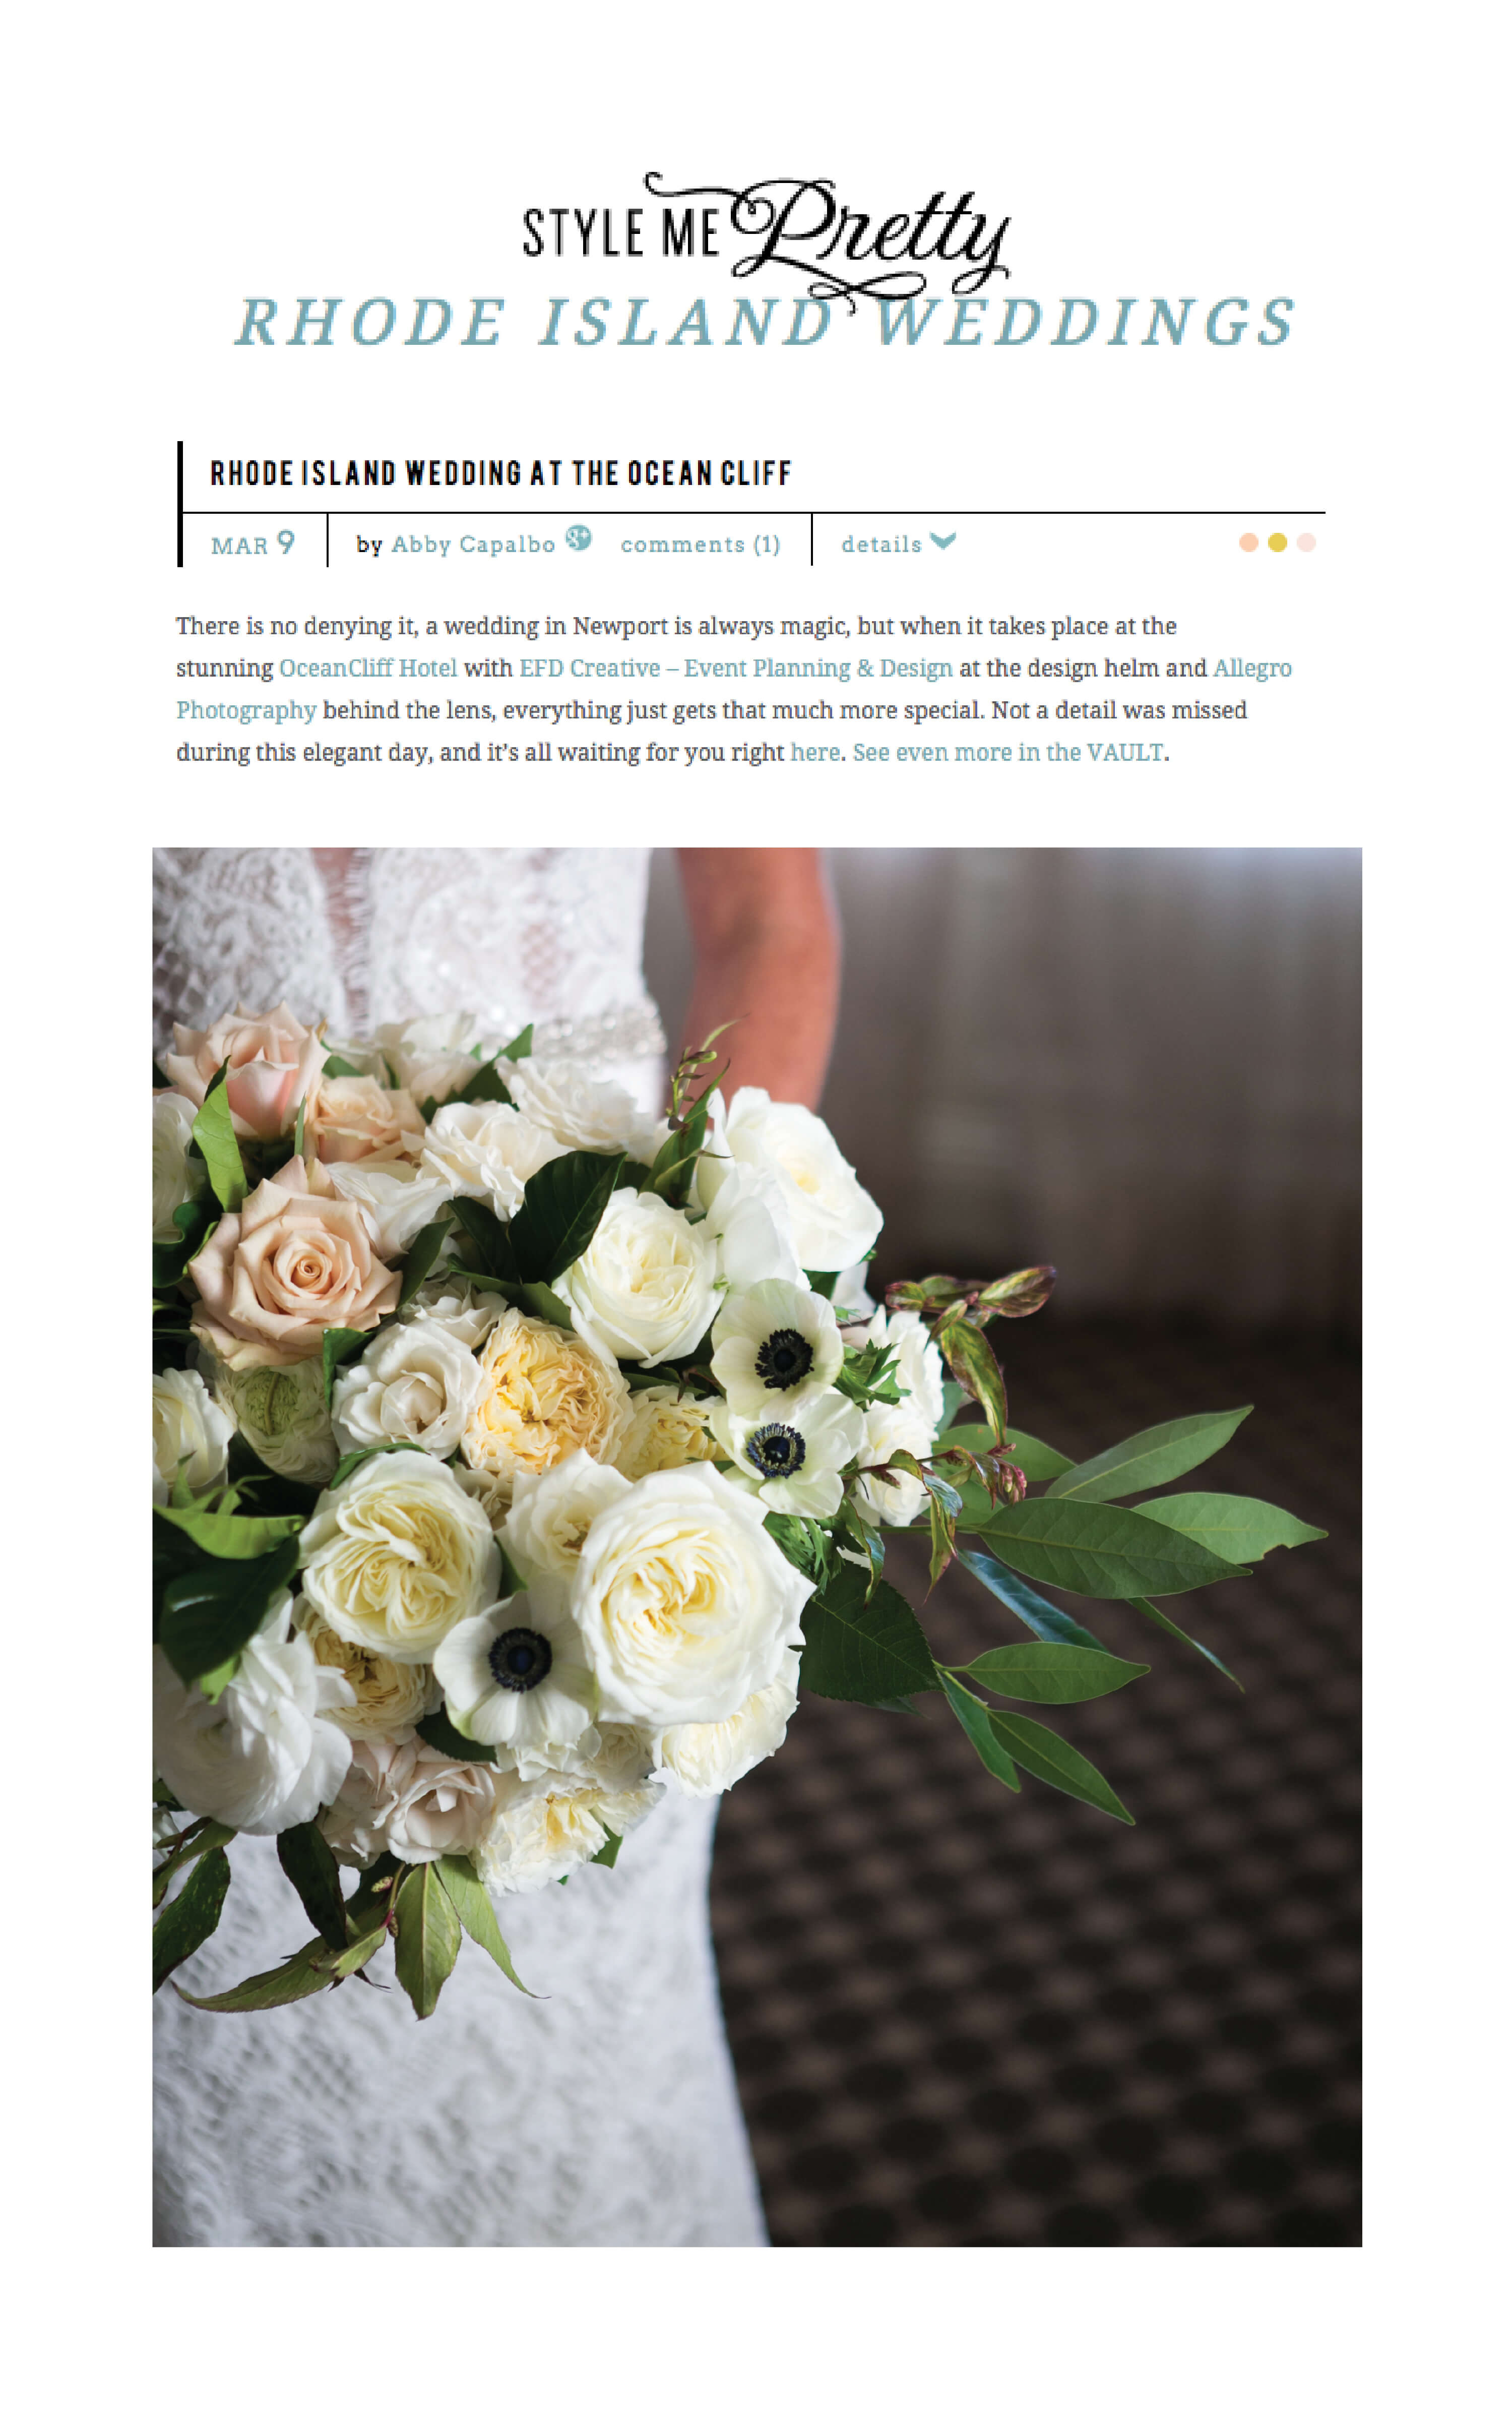 Efd creative featured on style me pretty ocean cliff ri wedding efd creative featured on style me pretty ocean cliff ri wedding mightylinksfo